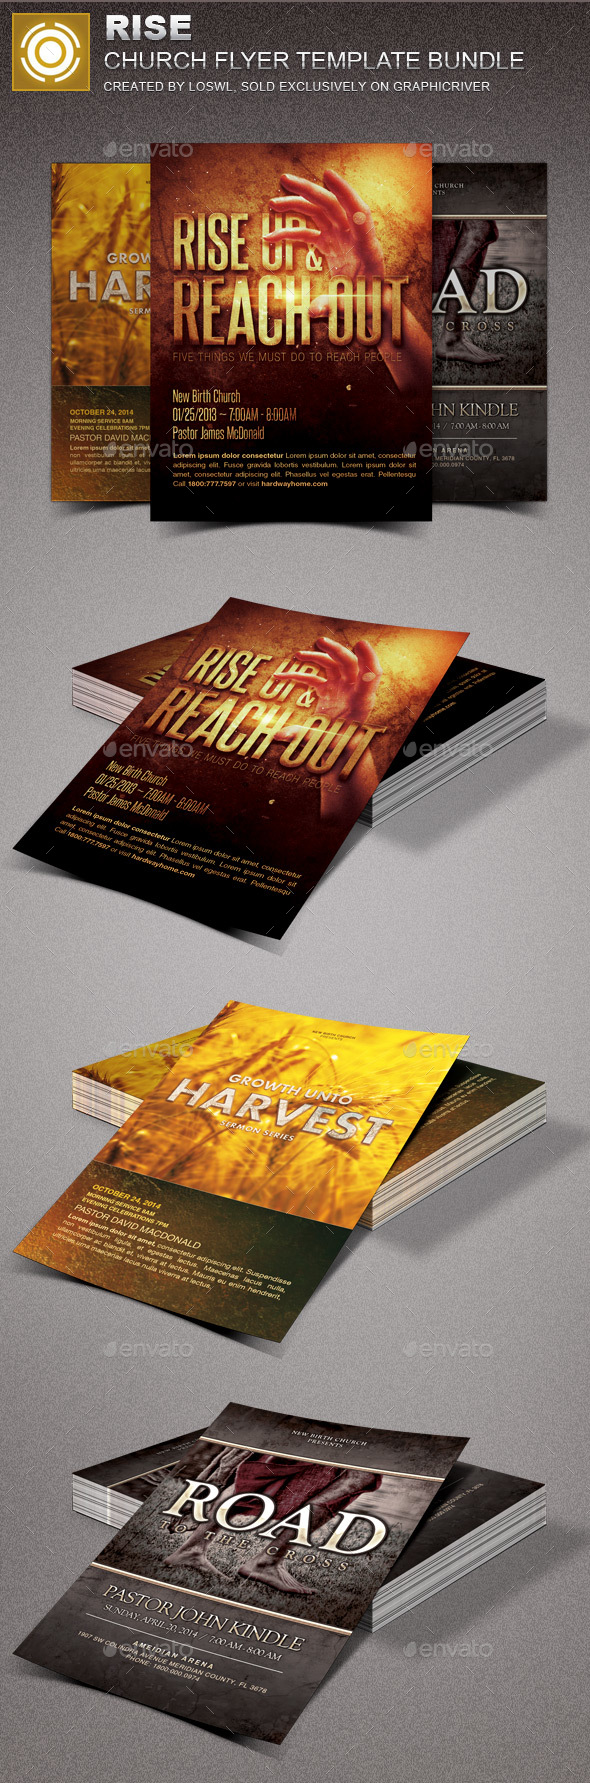 Rise Church Marketing Flyer Template Bundle - Church Flyers